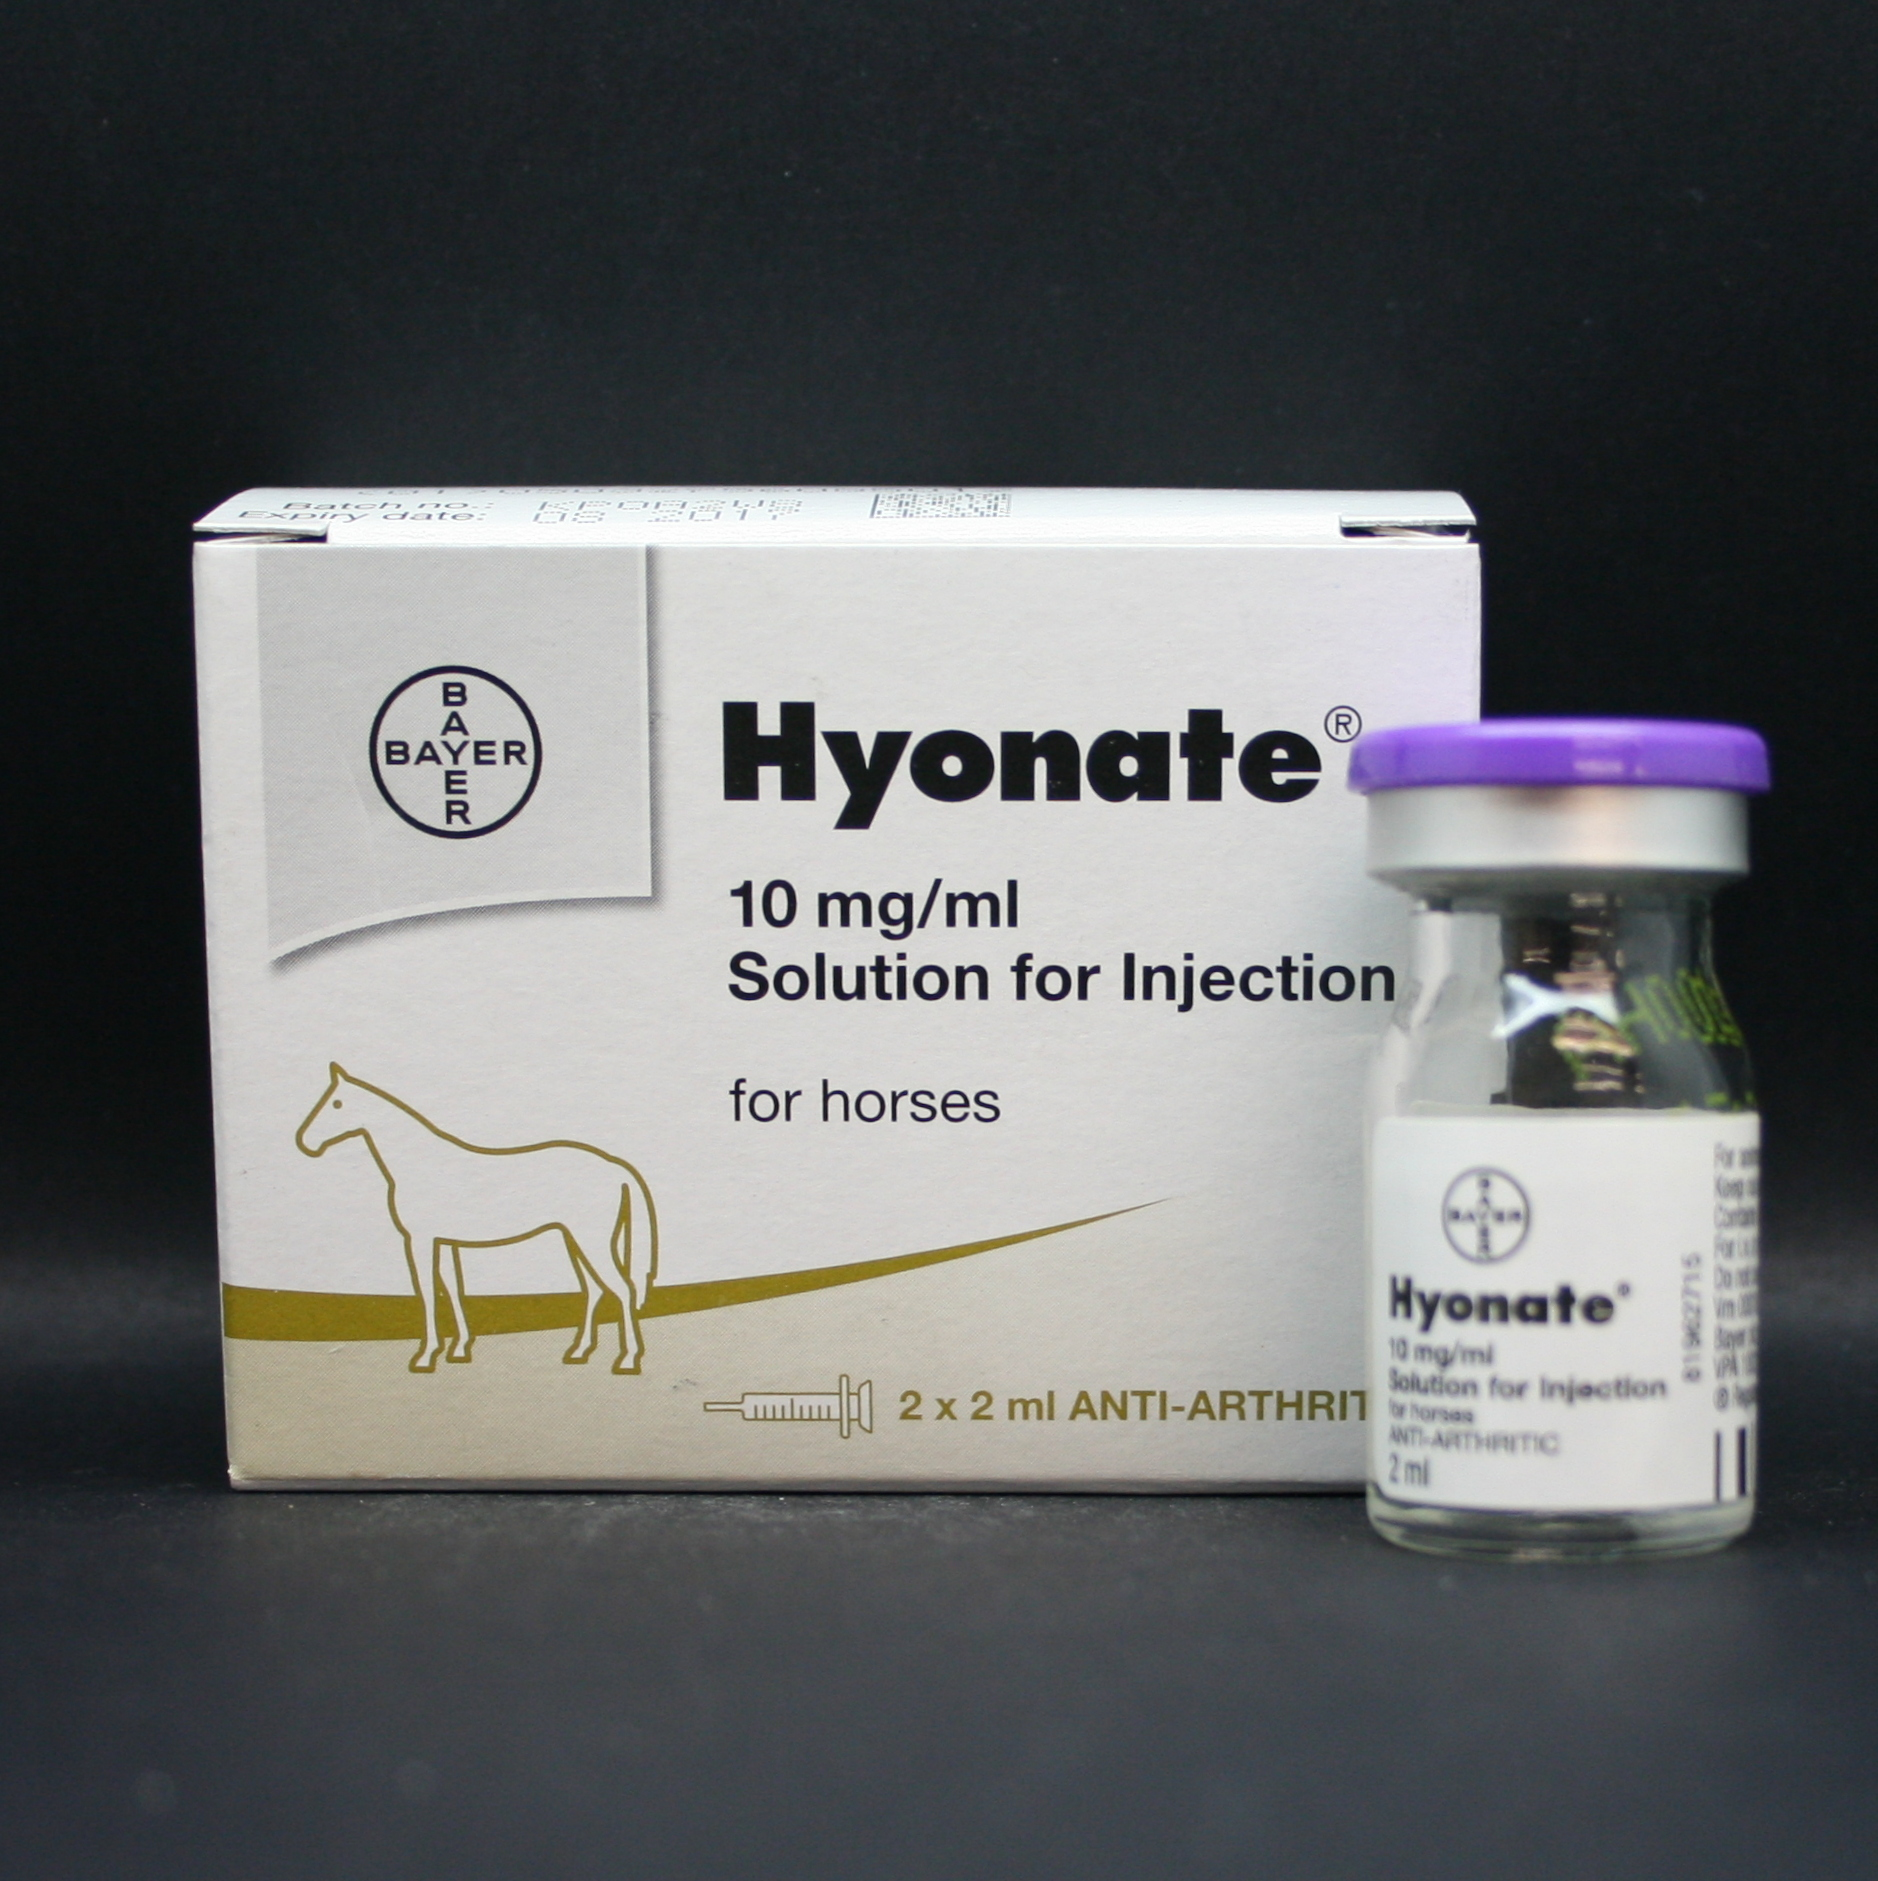 Hyonate 10 mg/ml Solution for Injection (2 x 2ml)